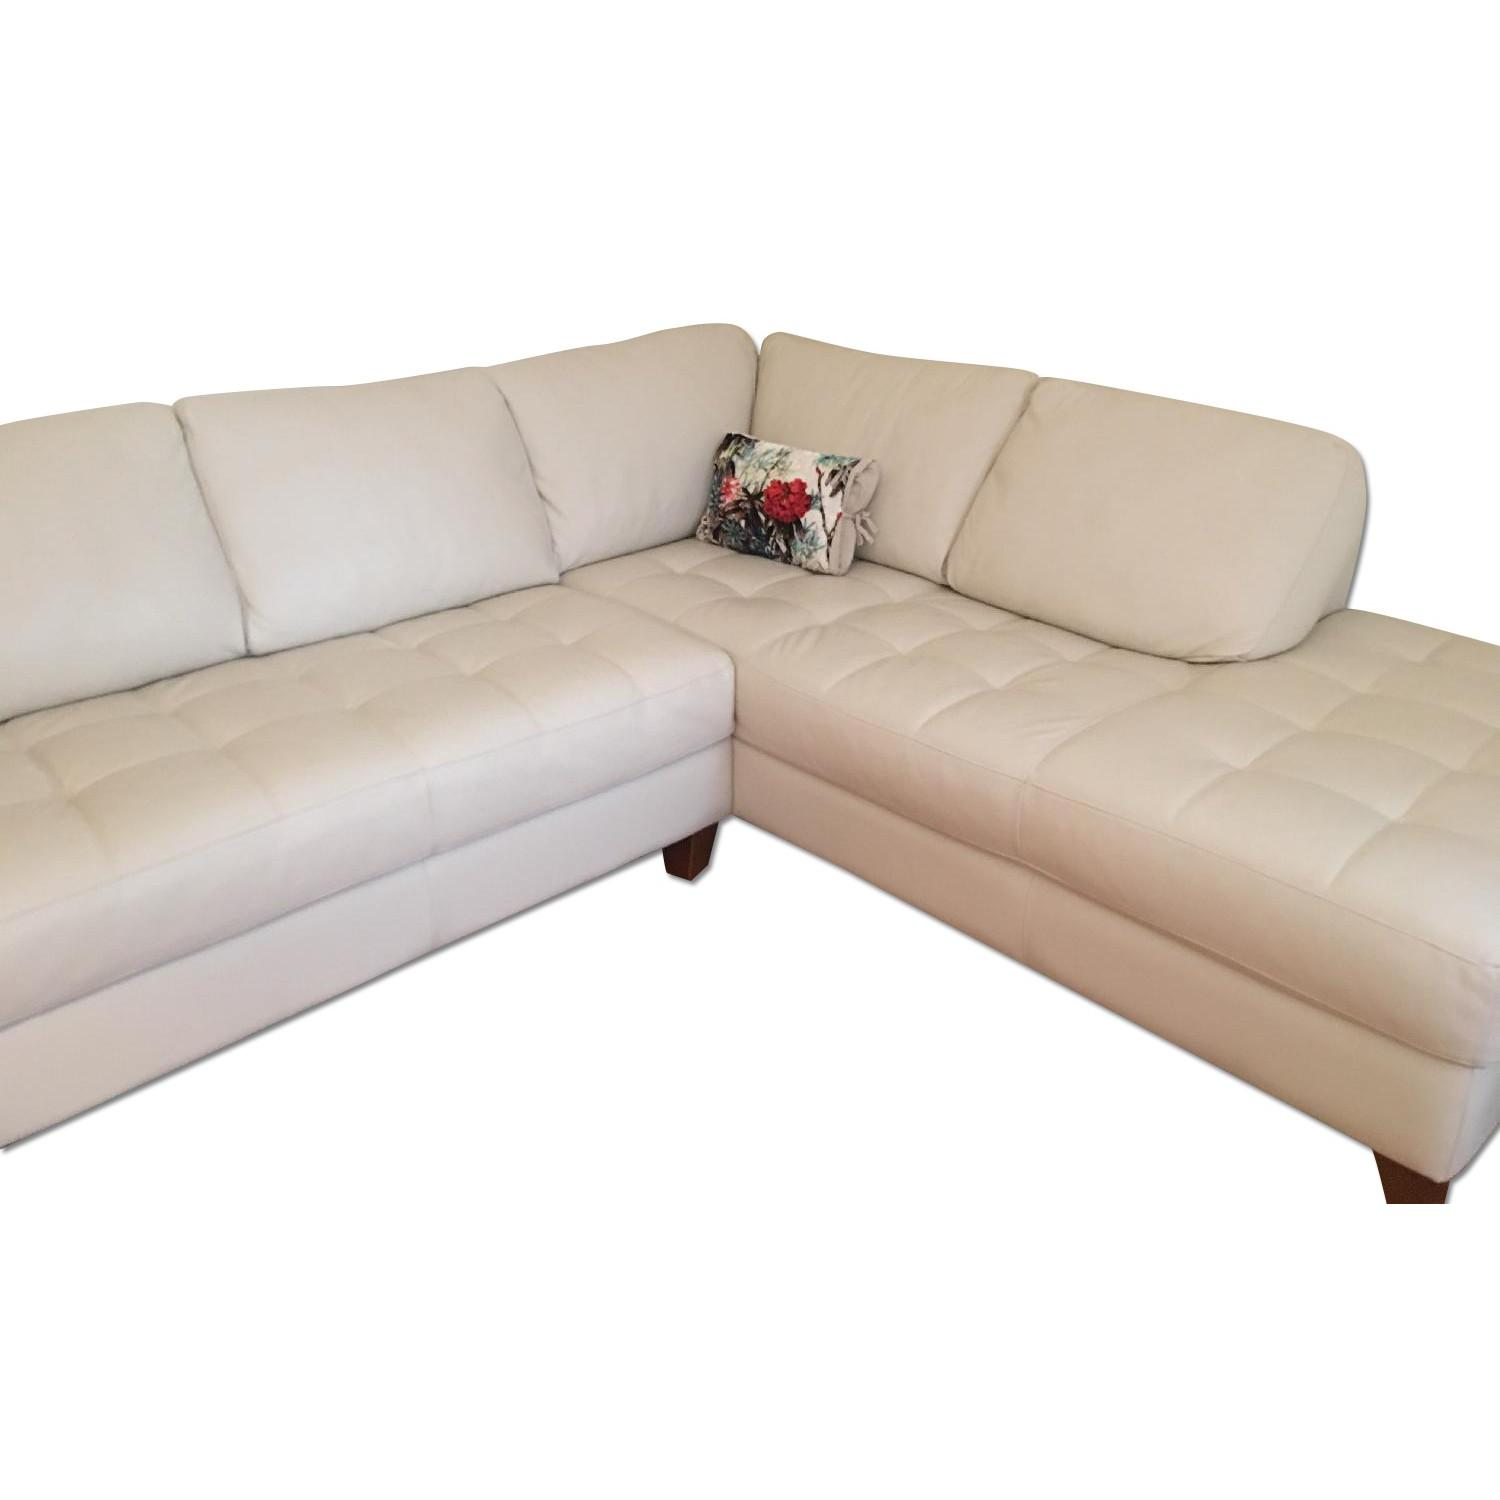 Macy's Italian Quilted Leather Sectional Sofa - image-0